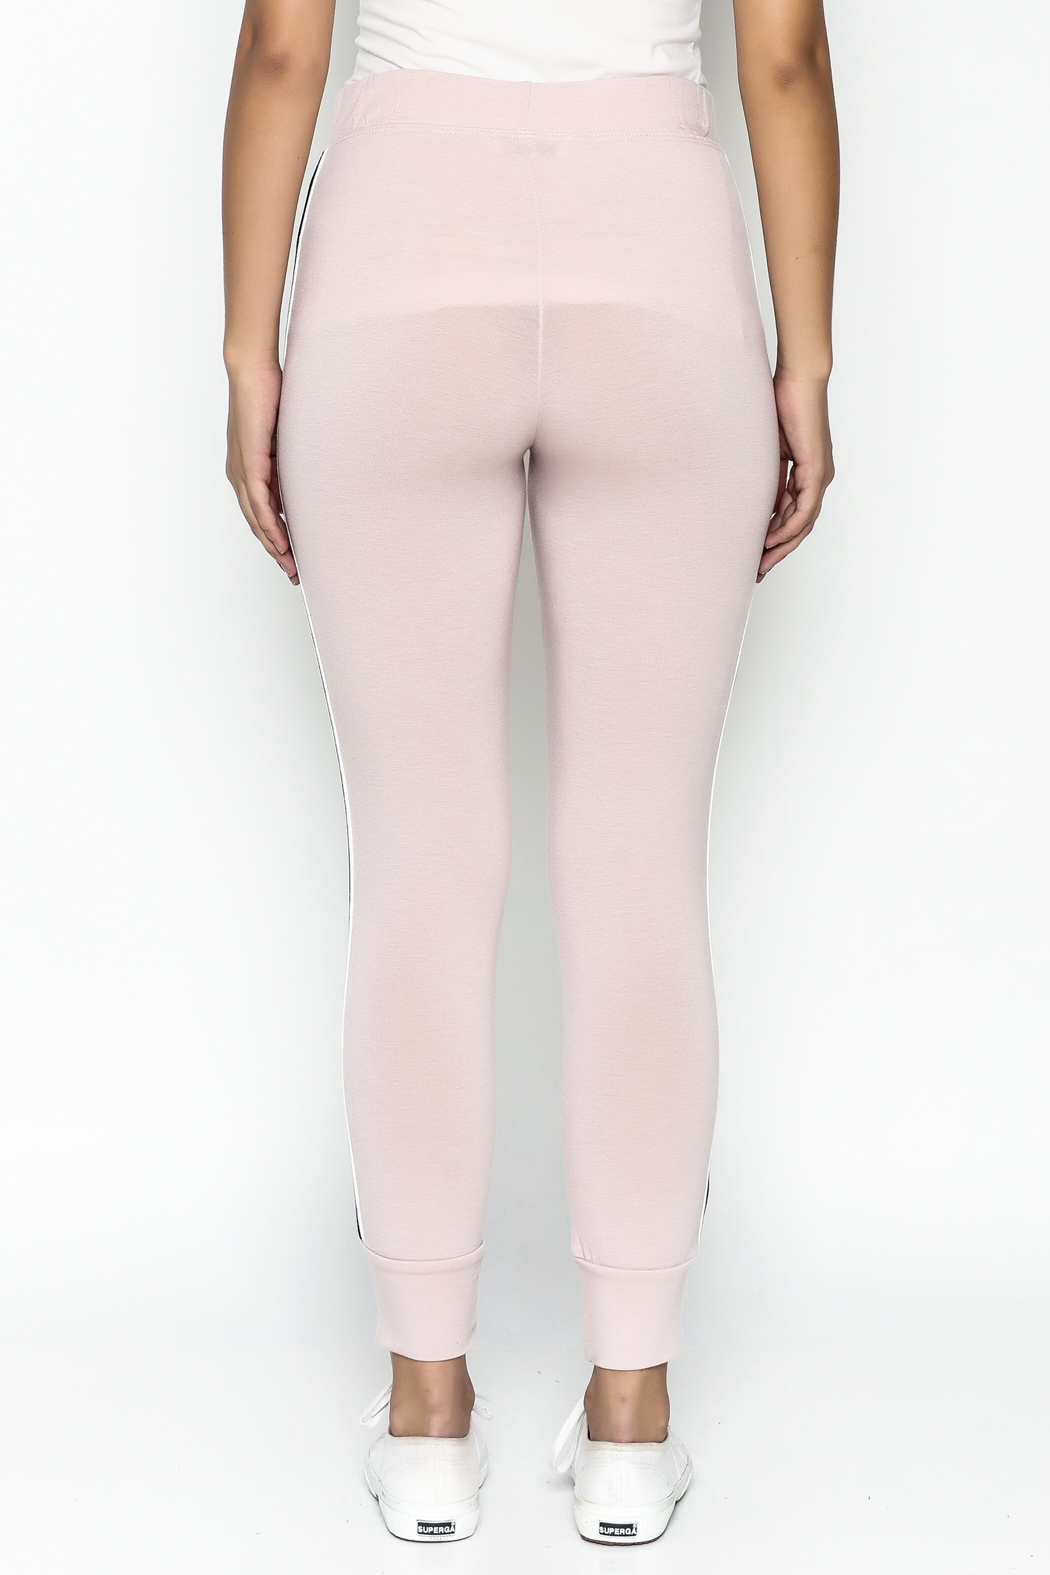 Happy Days USA Millennial Pink Jogger Pants - Back Cropped Image